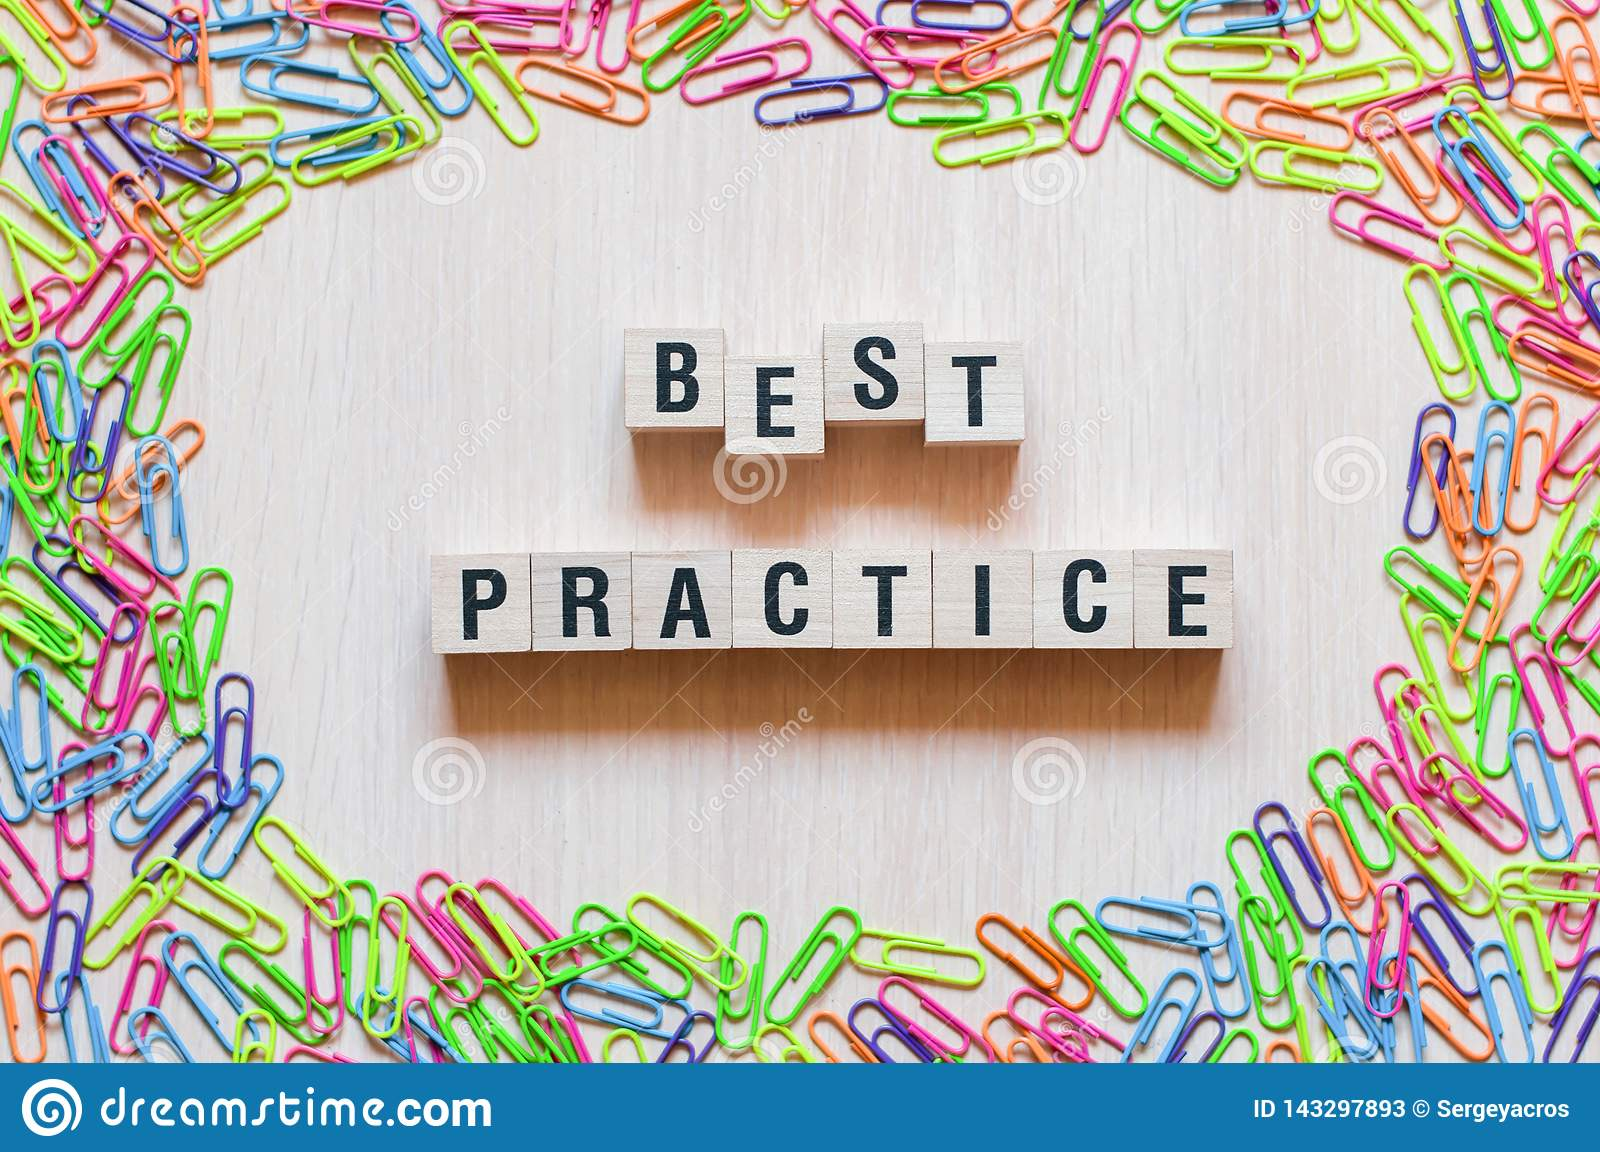 Best Practice words concept